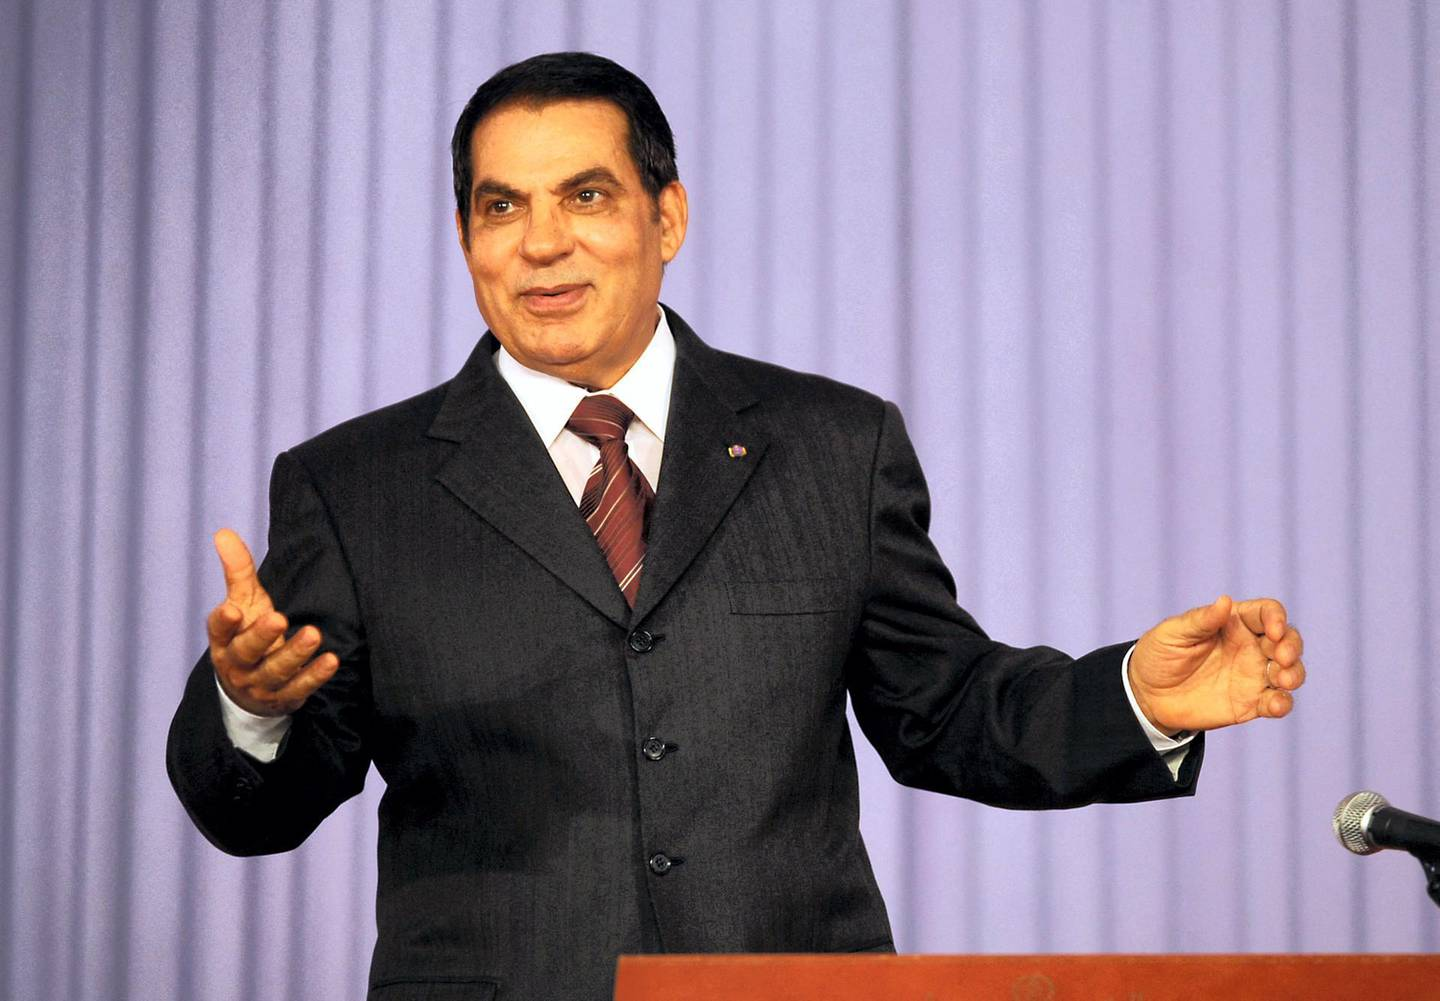 Tunisian President Zine El-Abidine Ben Ali gestures as he delivers a speech during the closing of the Democratic Constitutional Rally (RCD) Congress on August 02, 2008, in Tunis. Ben Ali announced on July 30 his fifth candidacy for presidential elections next year. AFP PHOTO/ FETHI BELAID (Photo by FETHI BELAID / AFP)